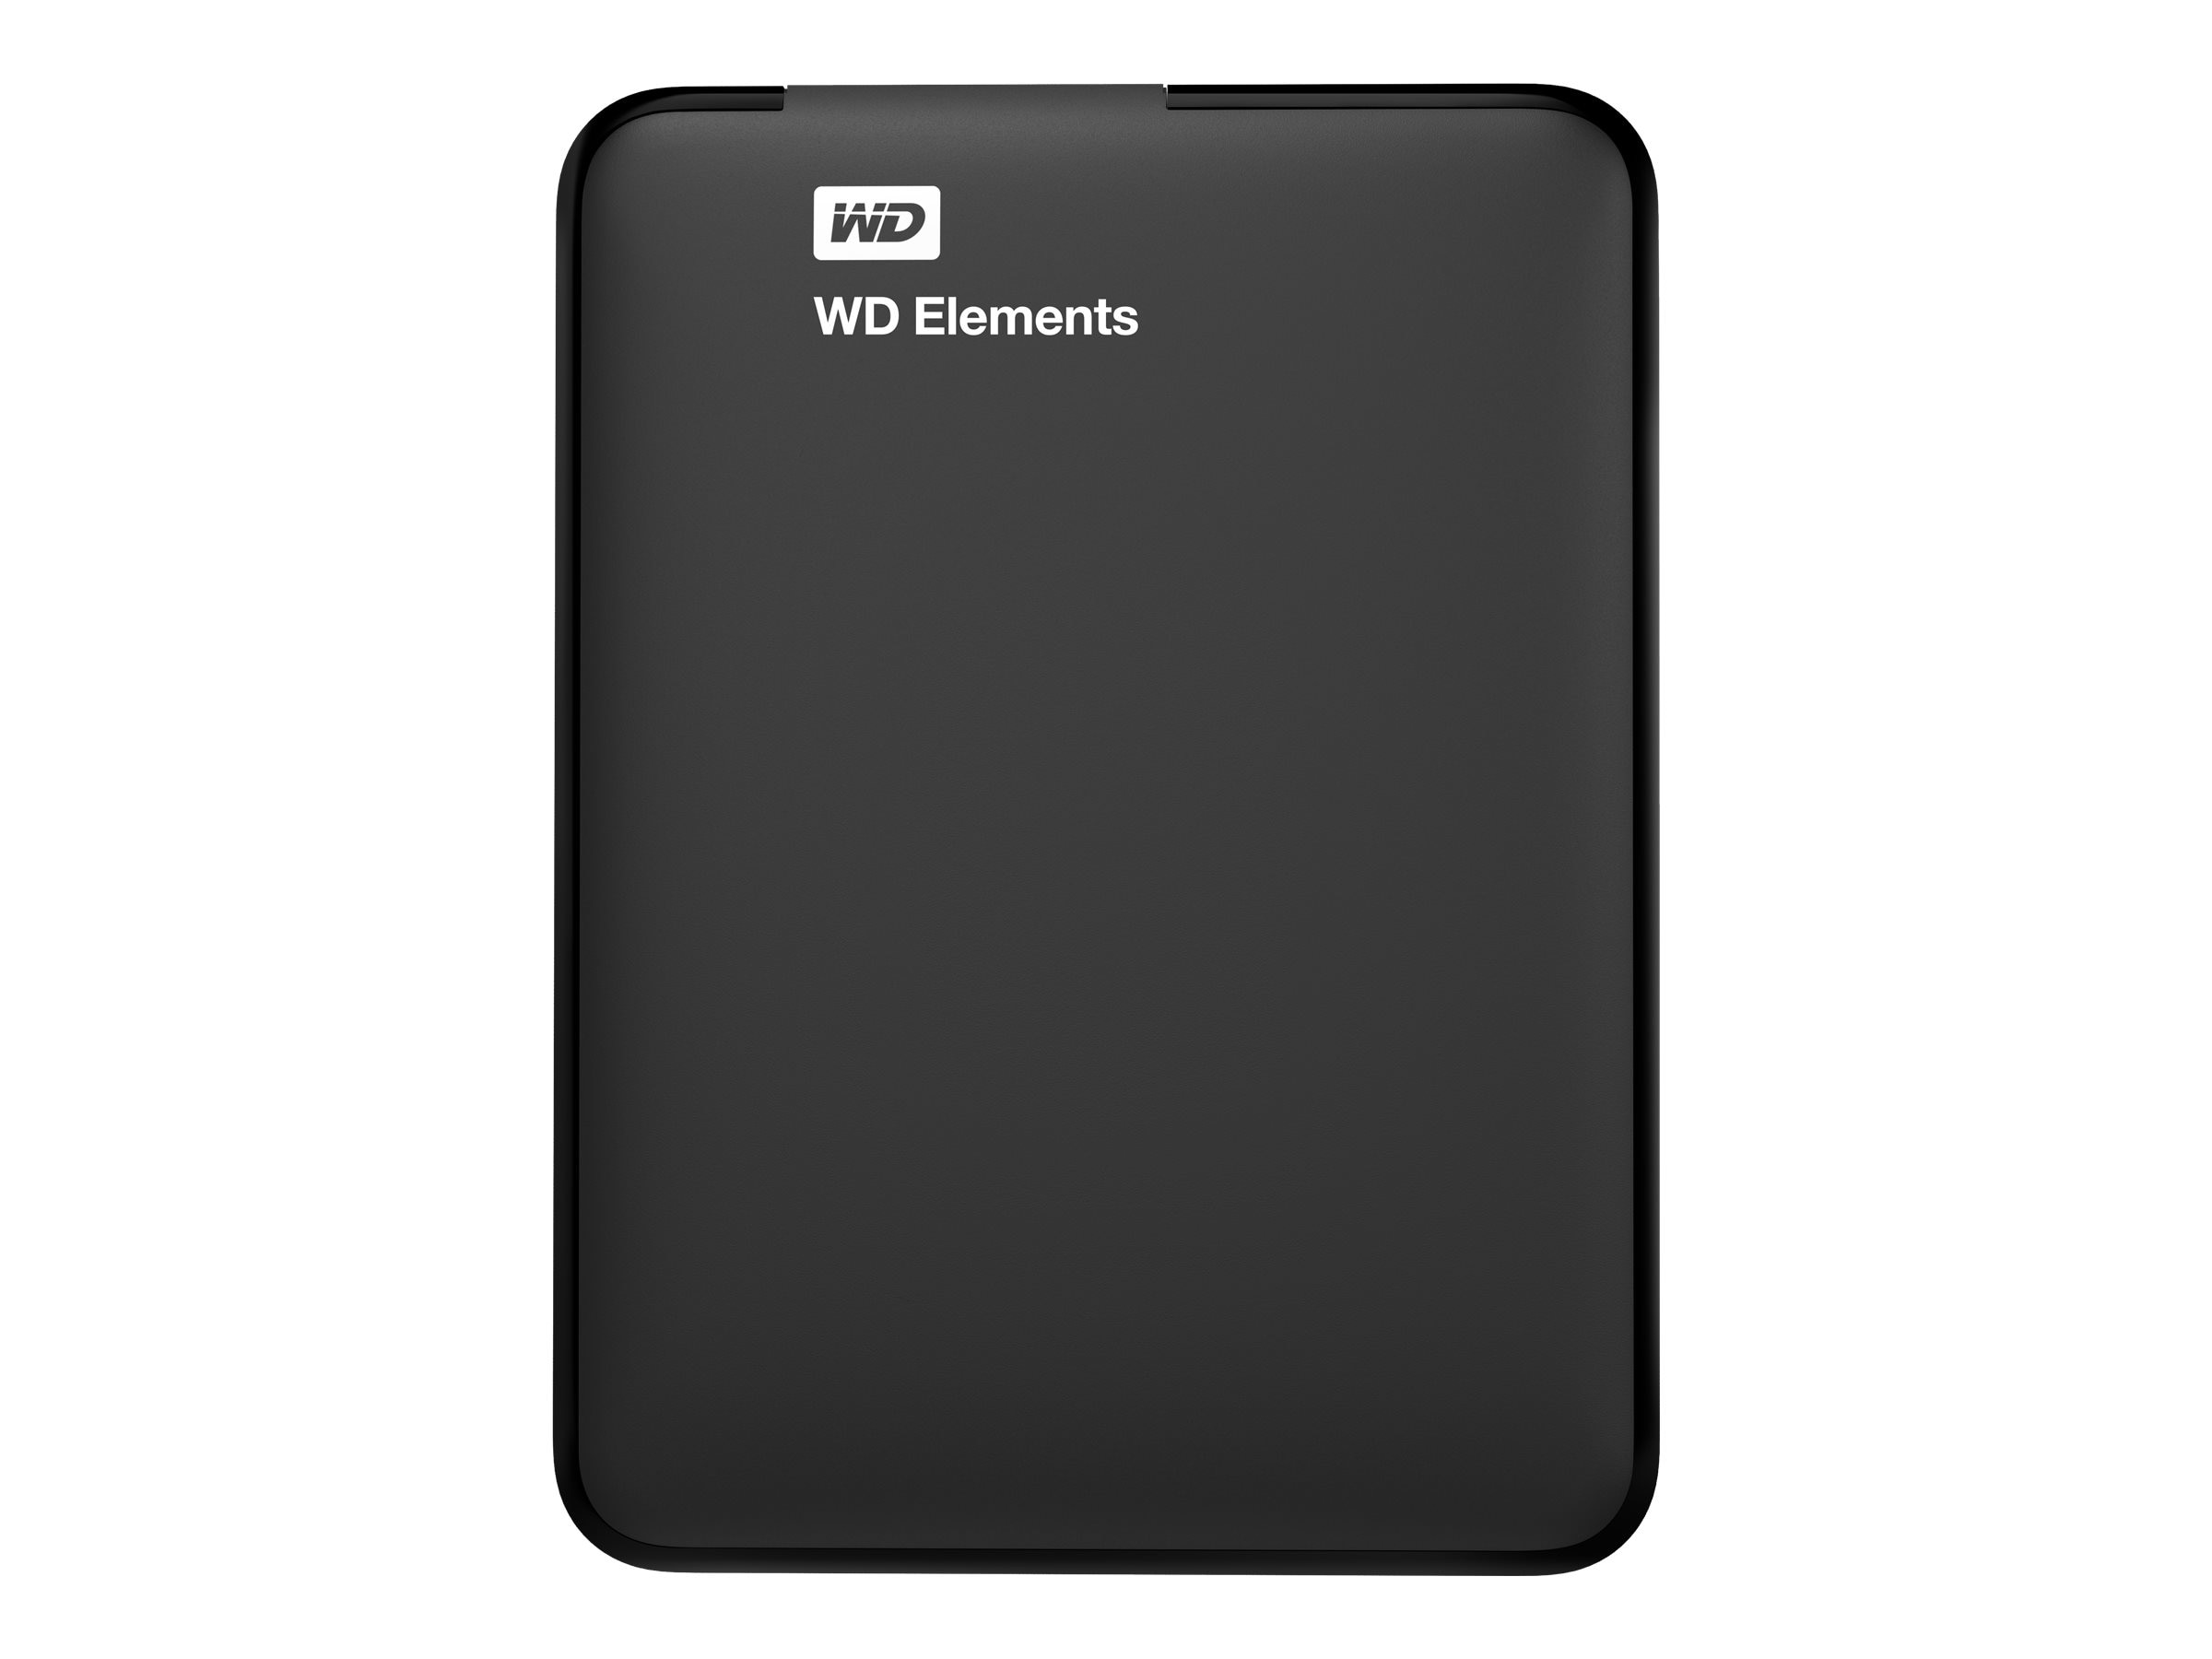 WD 2TB WD Elements USB 3.0 Portable Hard Drive, WDBU6Y0020BBK-NESN, 15925276, Hard Drives - External